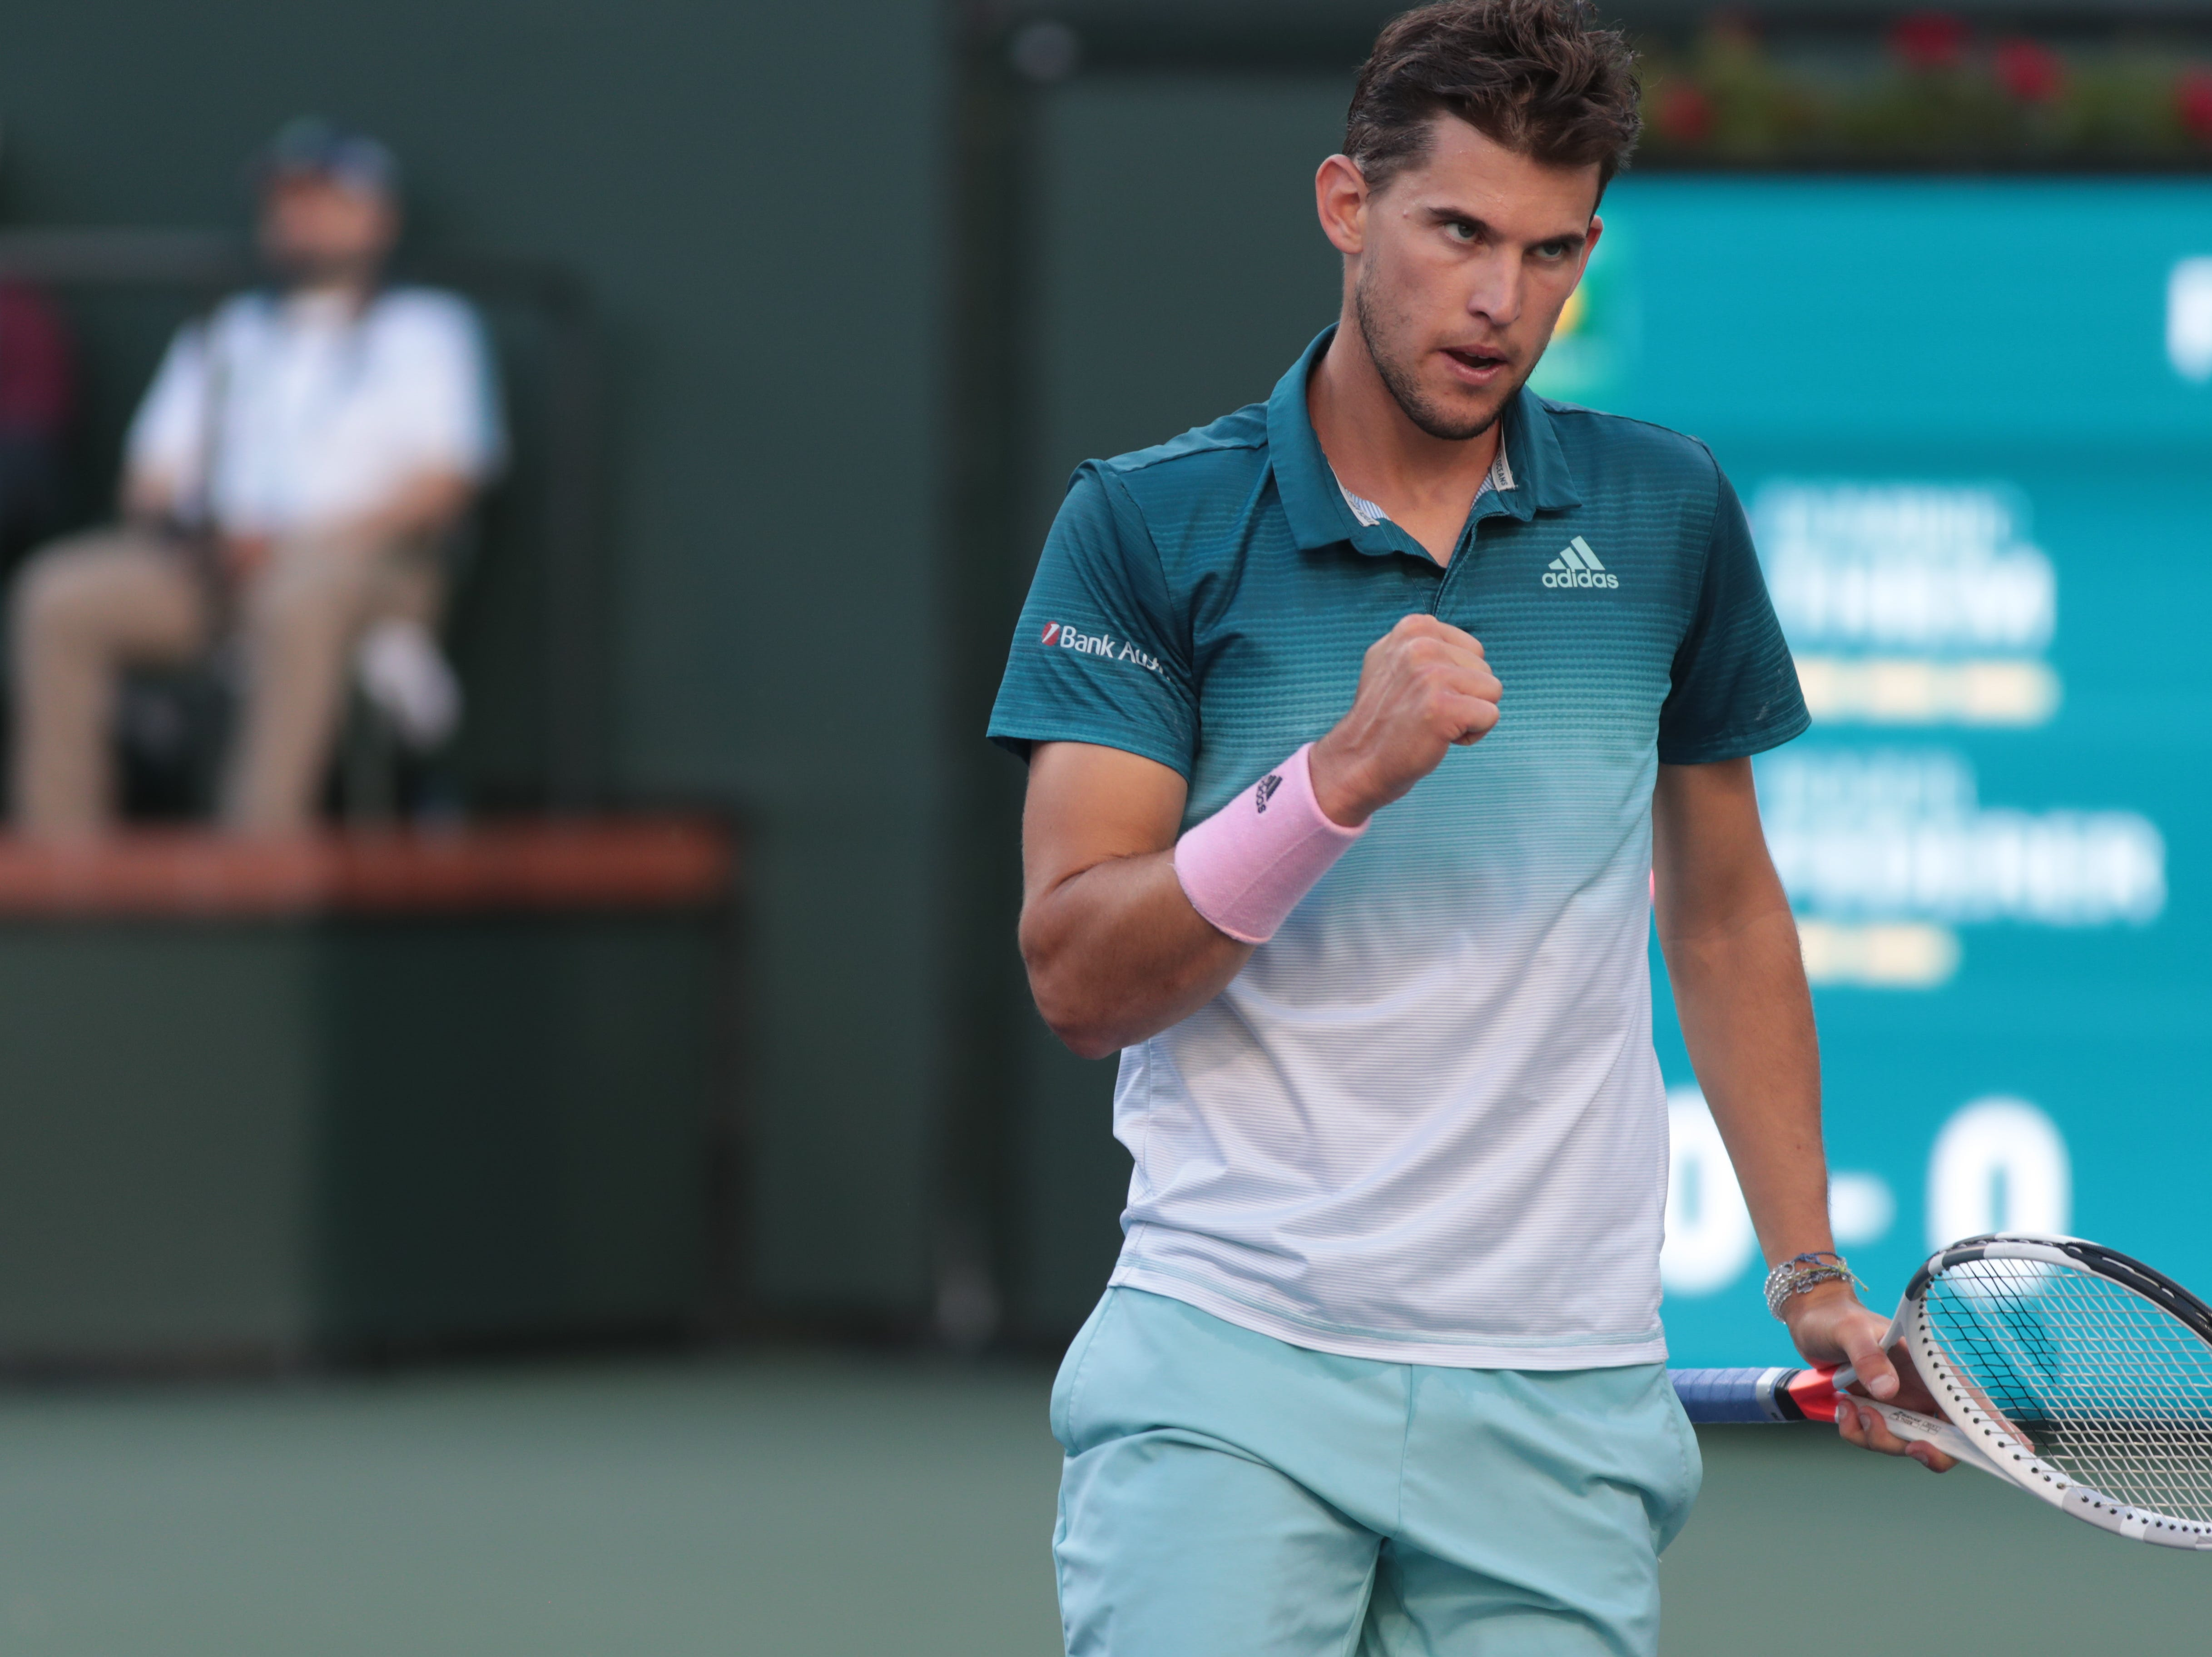 Dominic Thiem reacts after winning a point against Roger Federer in the finals of the BNP Paribas Open in Indian Wells, Calif., March 17, 2019.